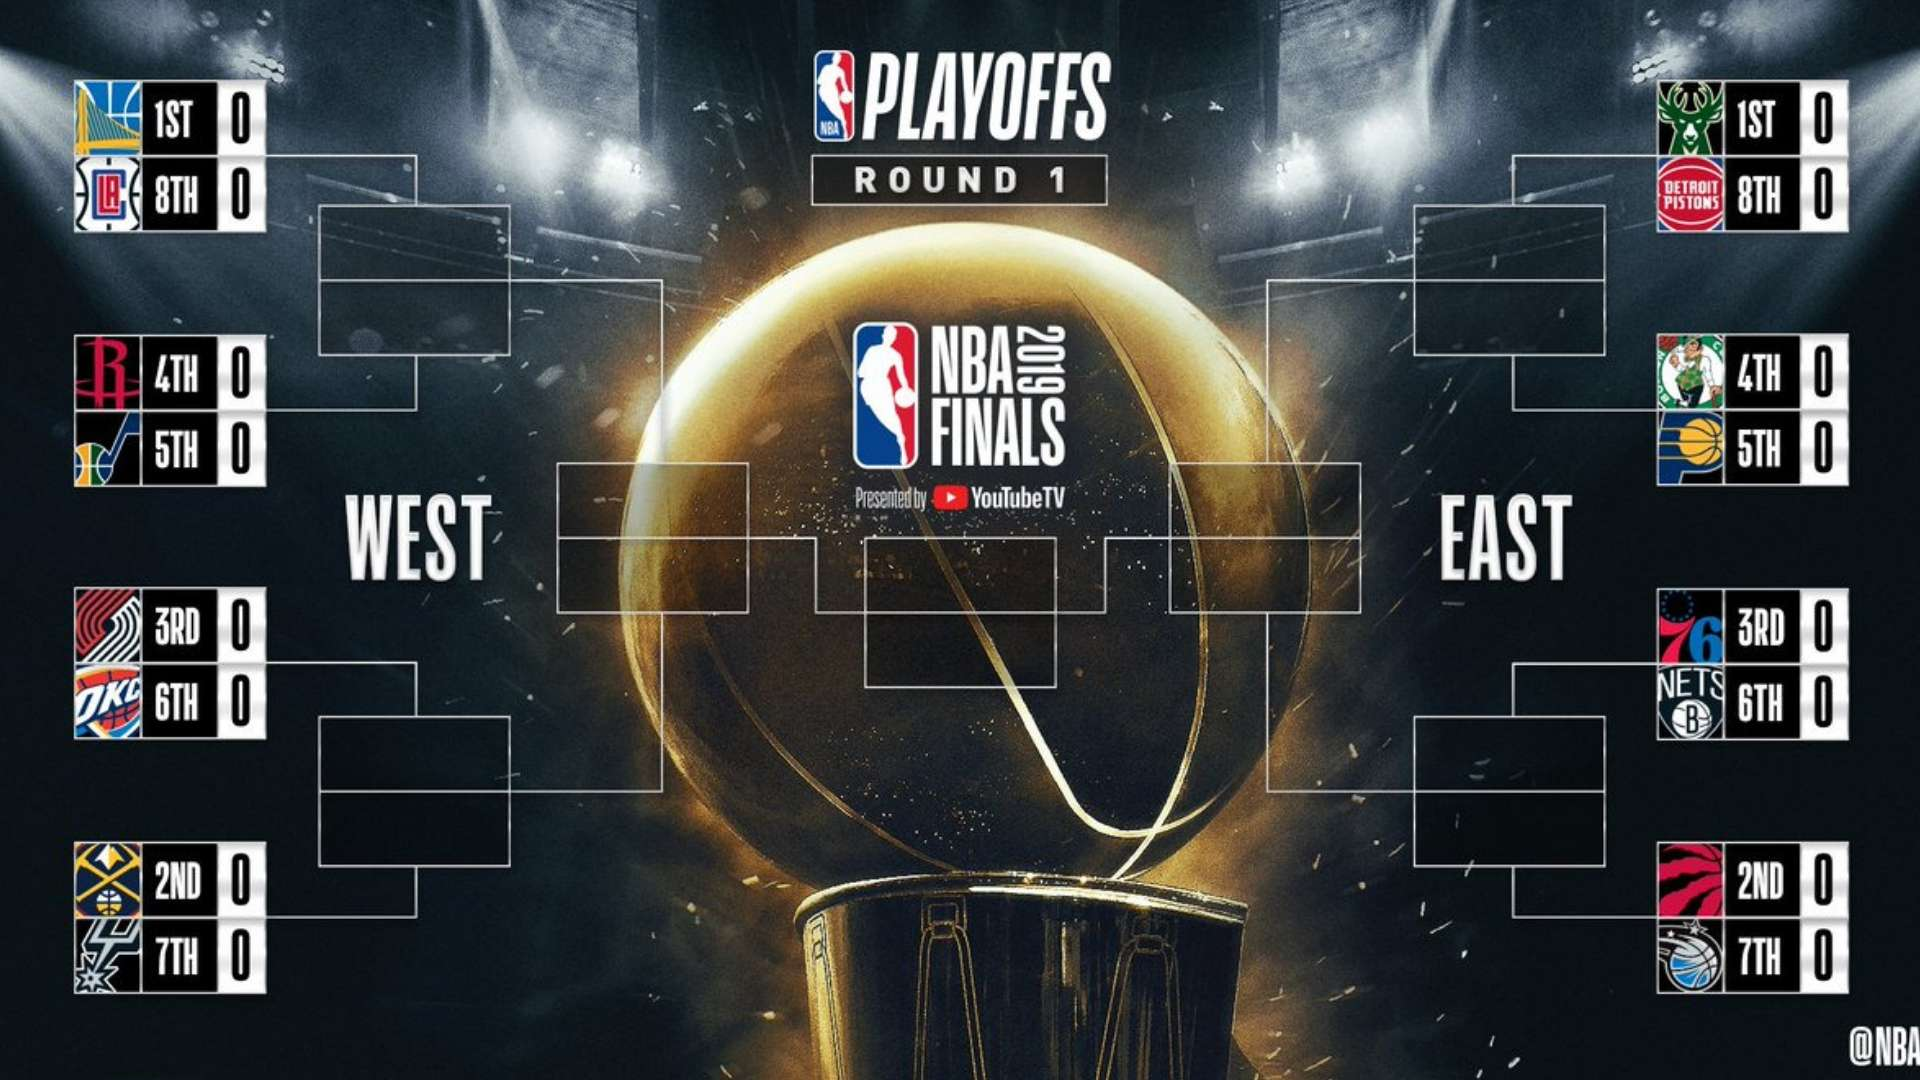 Calendario Play Off.Asi Quedan Los Playoffs Nba 2019 Consulta El Calendario Y